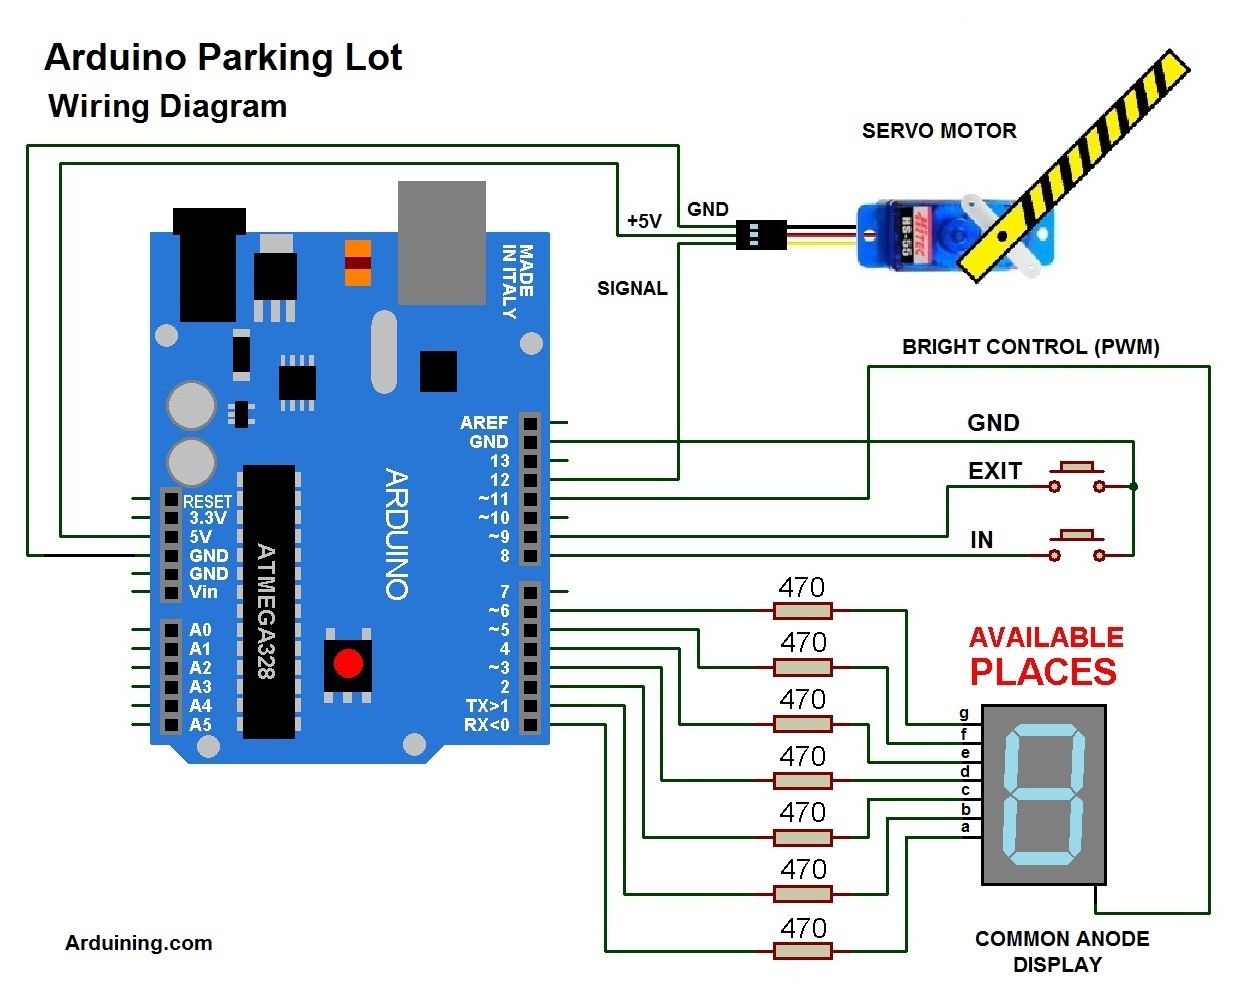 Gate Opener Wiring Diagram Will Be A Thing Arduino Parking Lot Filled Arduining Electric Ahouse